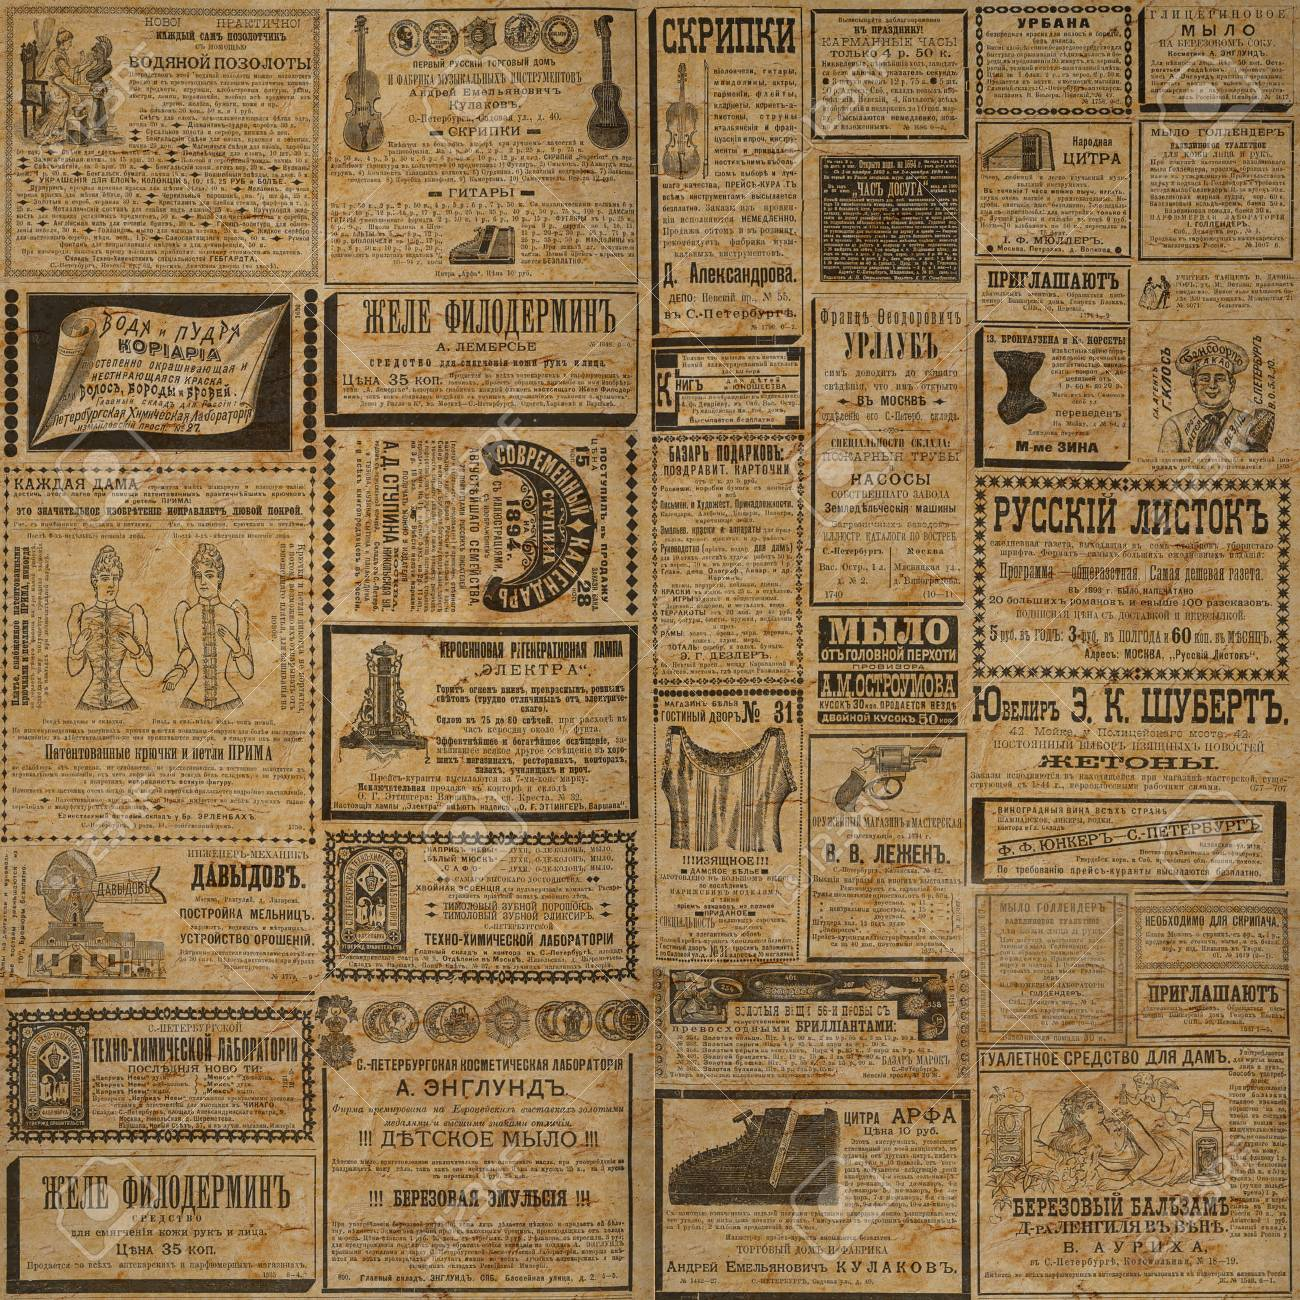 vintage newspaper texture. a newspaper page illustration with